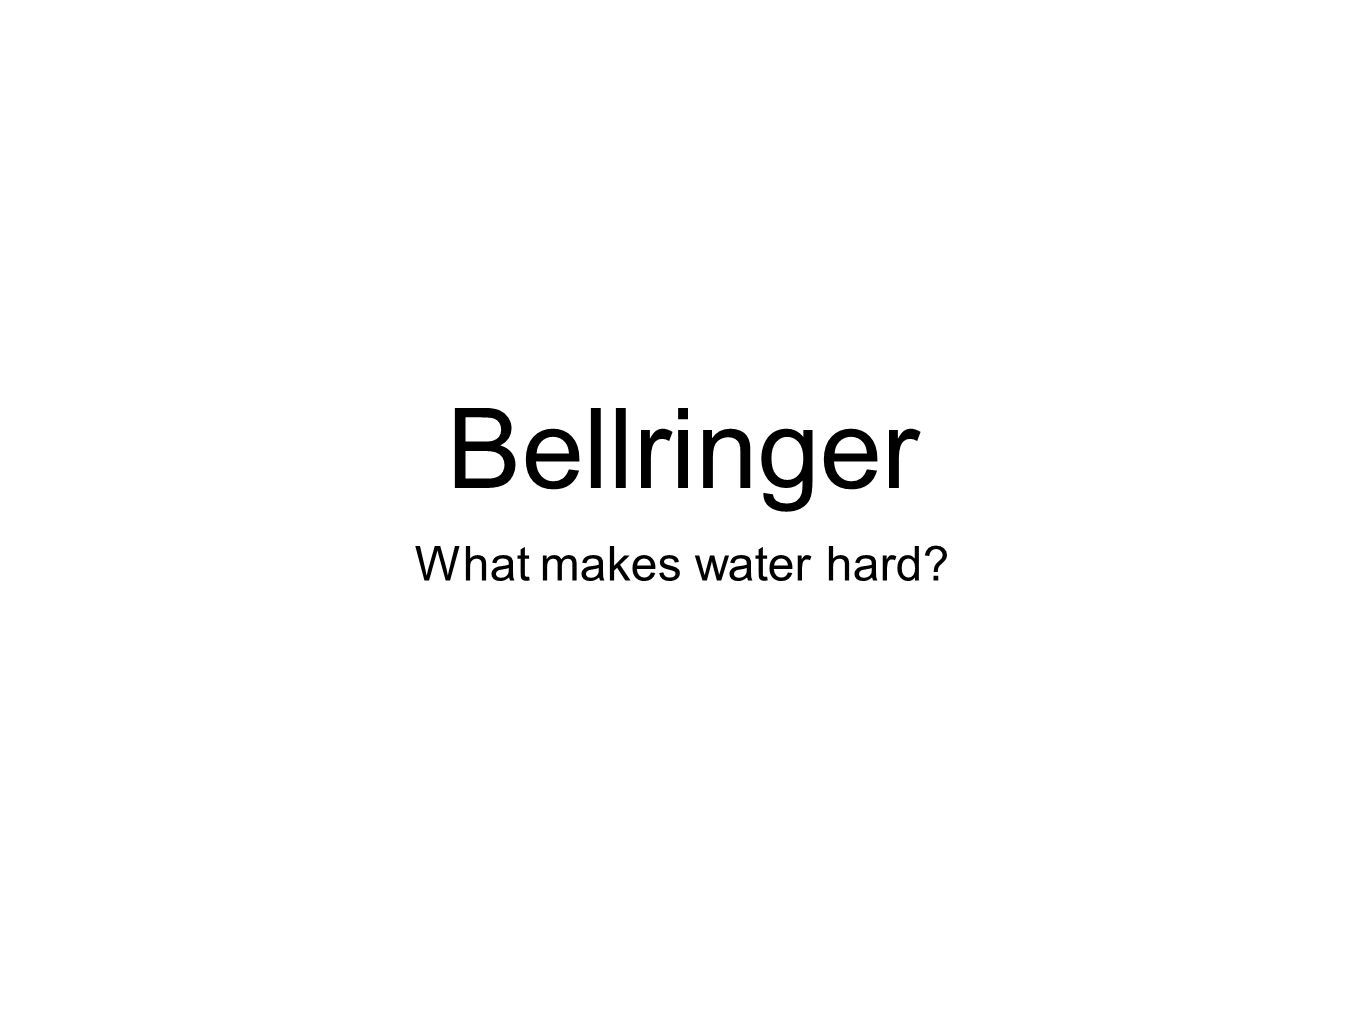 Bellringer What makes water hard